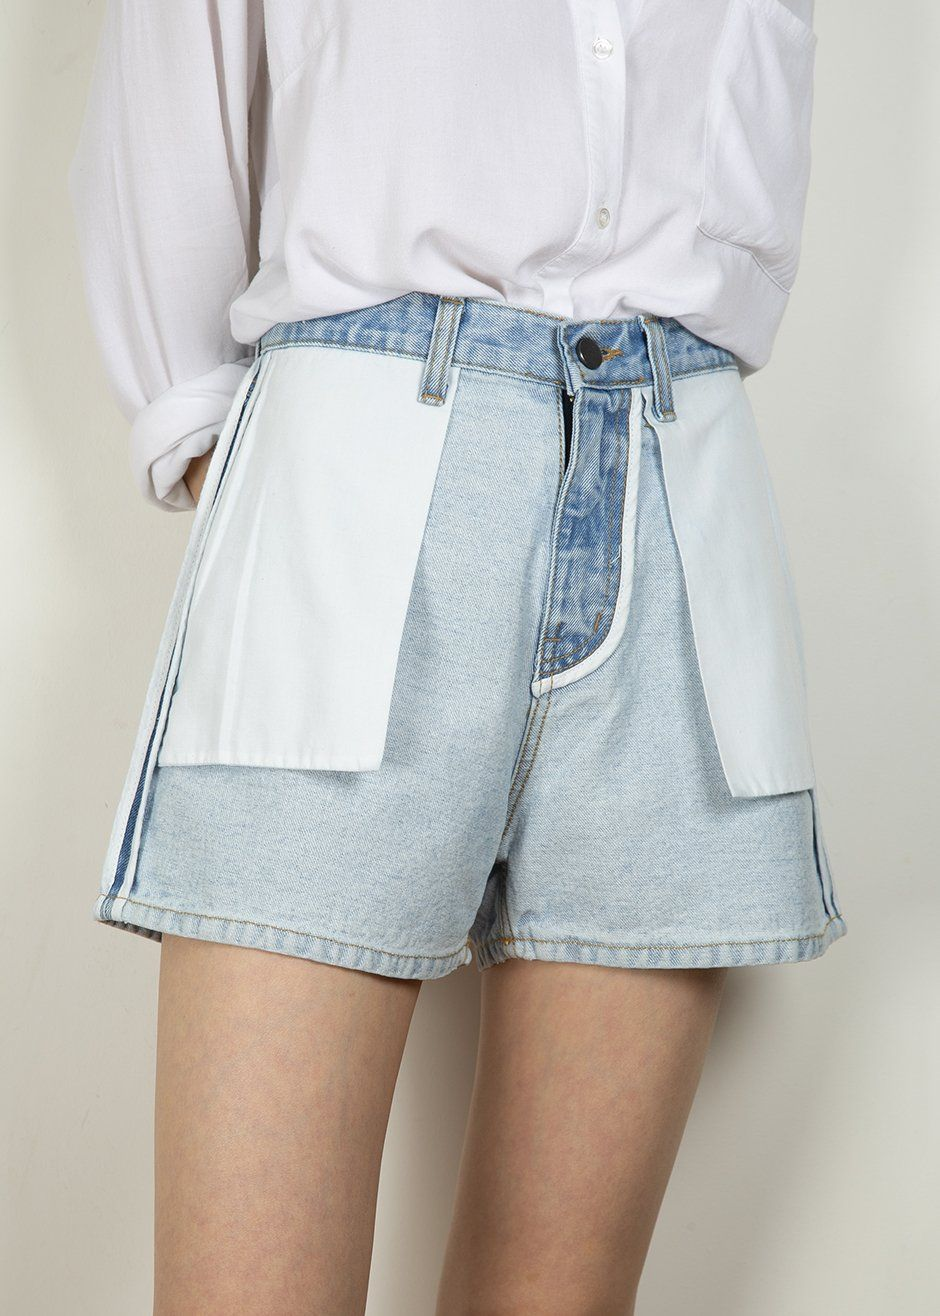 5039b5548994 Inside Out Faded Blue Denim Shorts in 2019 | Ss19 like | Denim ...